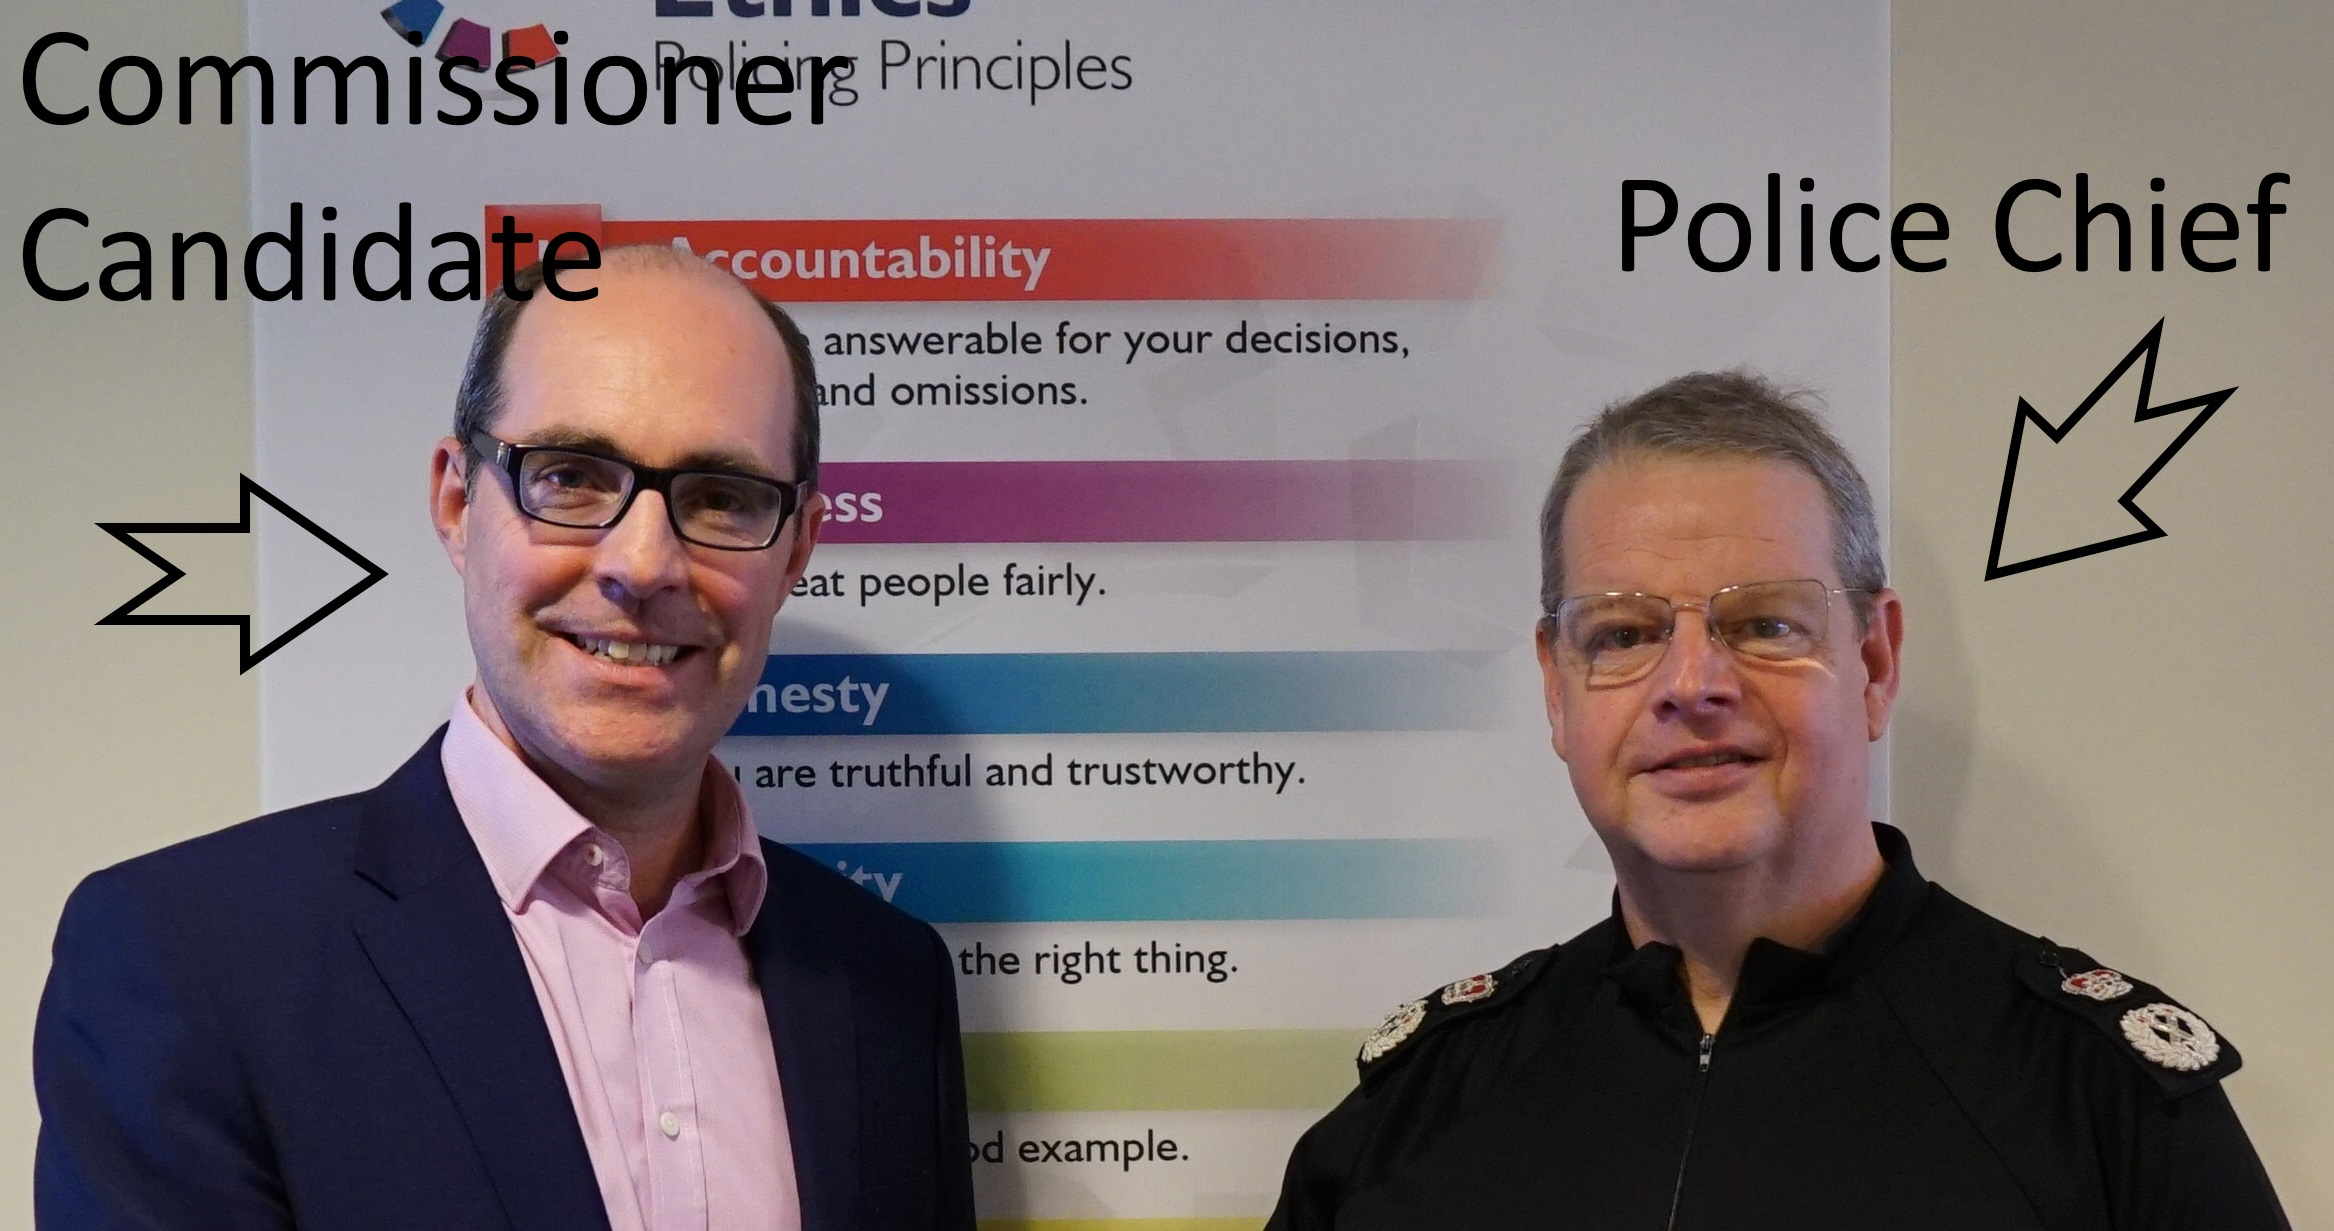 A Commissioner - Not Another Police Chief